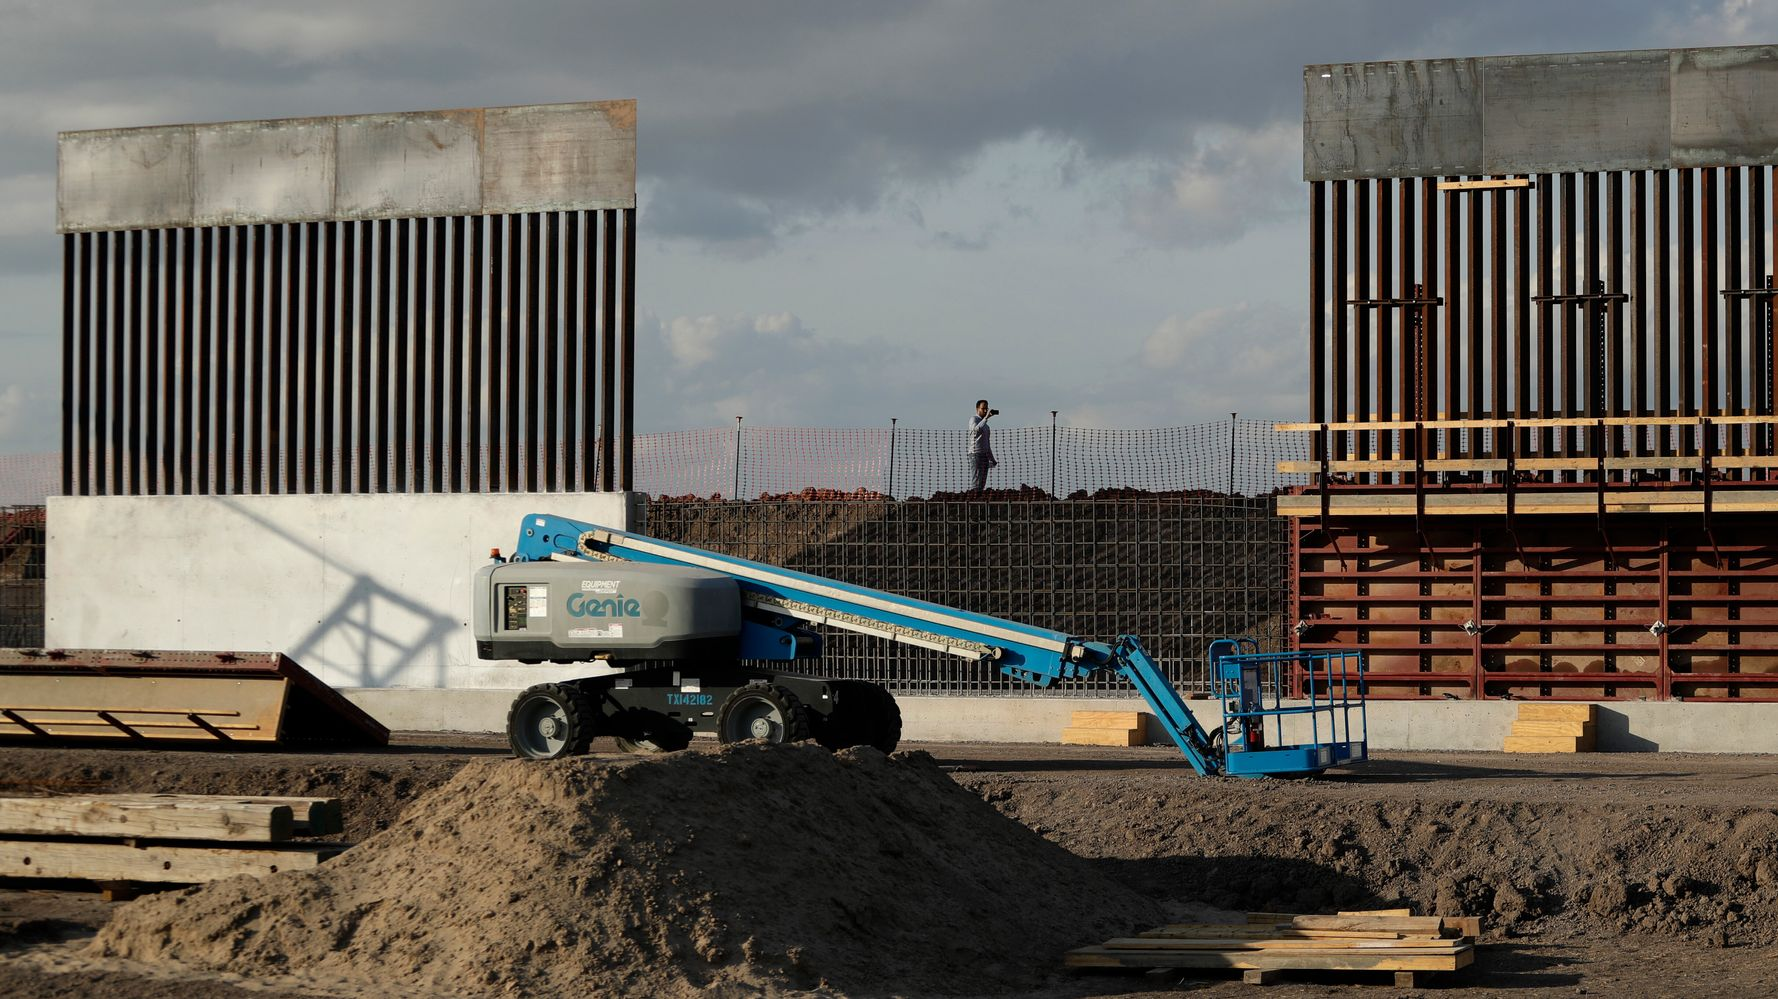 Contractors Smuggled Armed Mexican Nationals To Guard Trump's Border Wall: Complaint